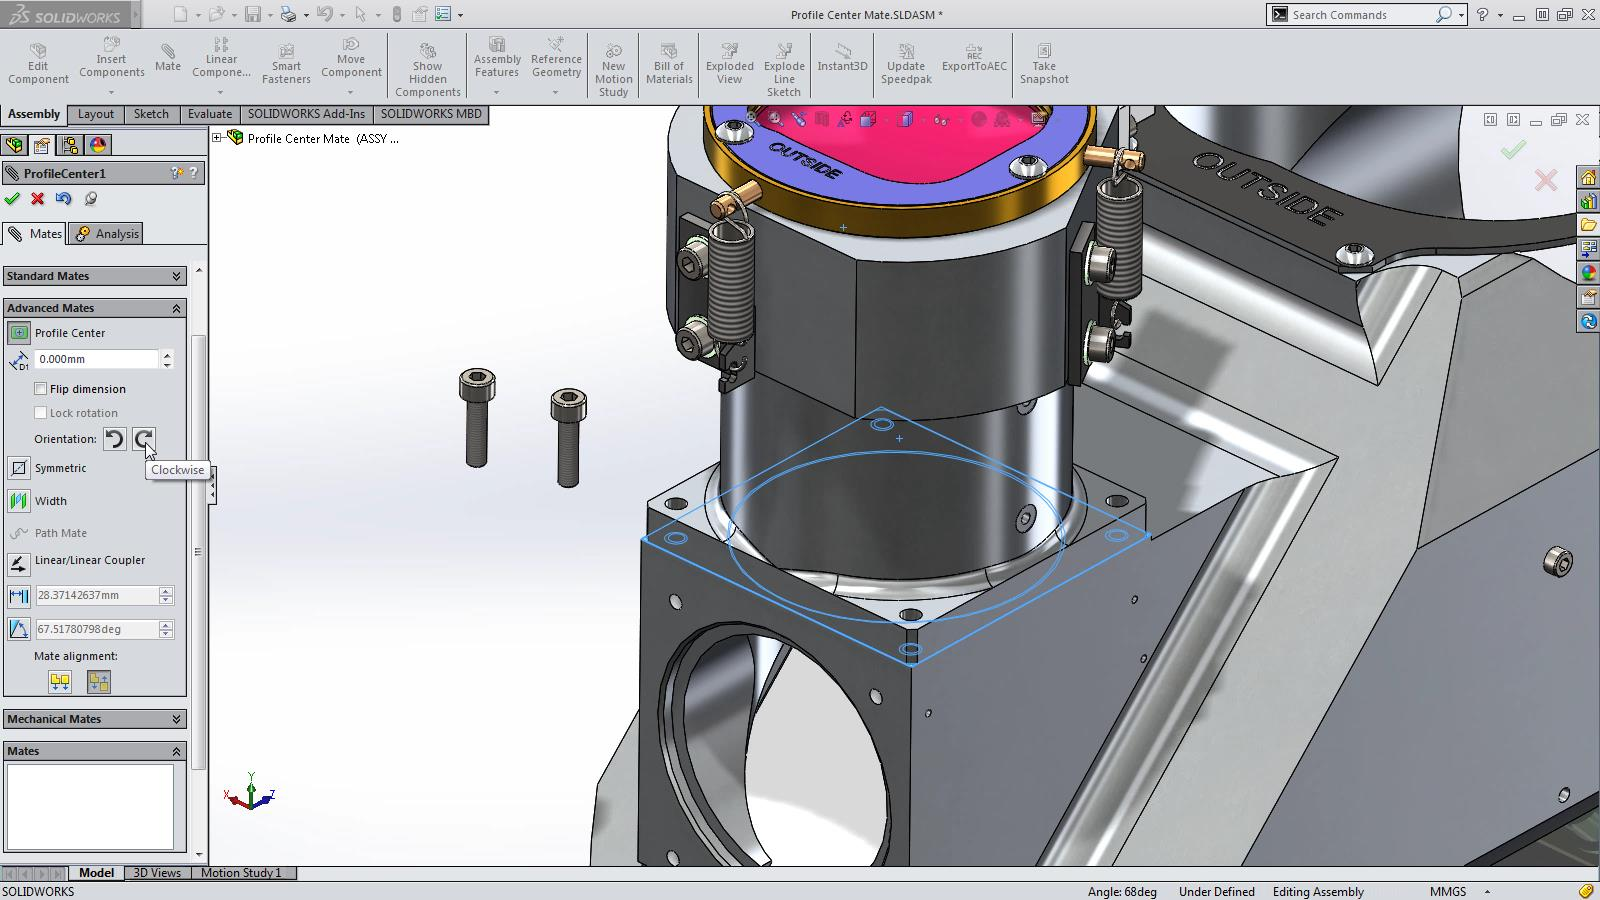 SOLIDWORKS 2015 Sneak Peek: Profile Center Mate